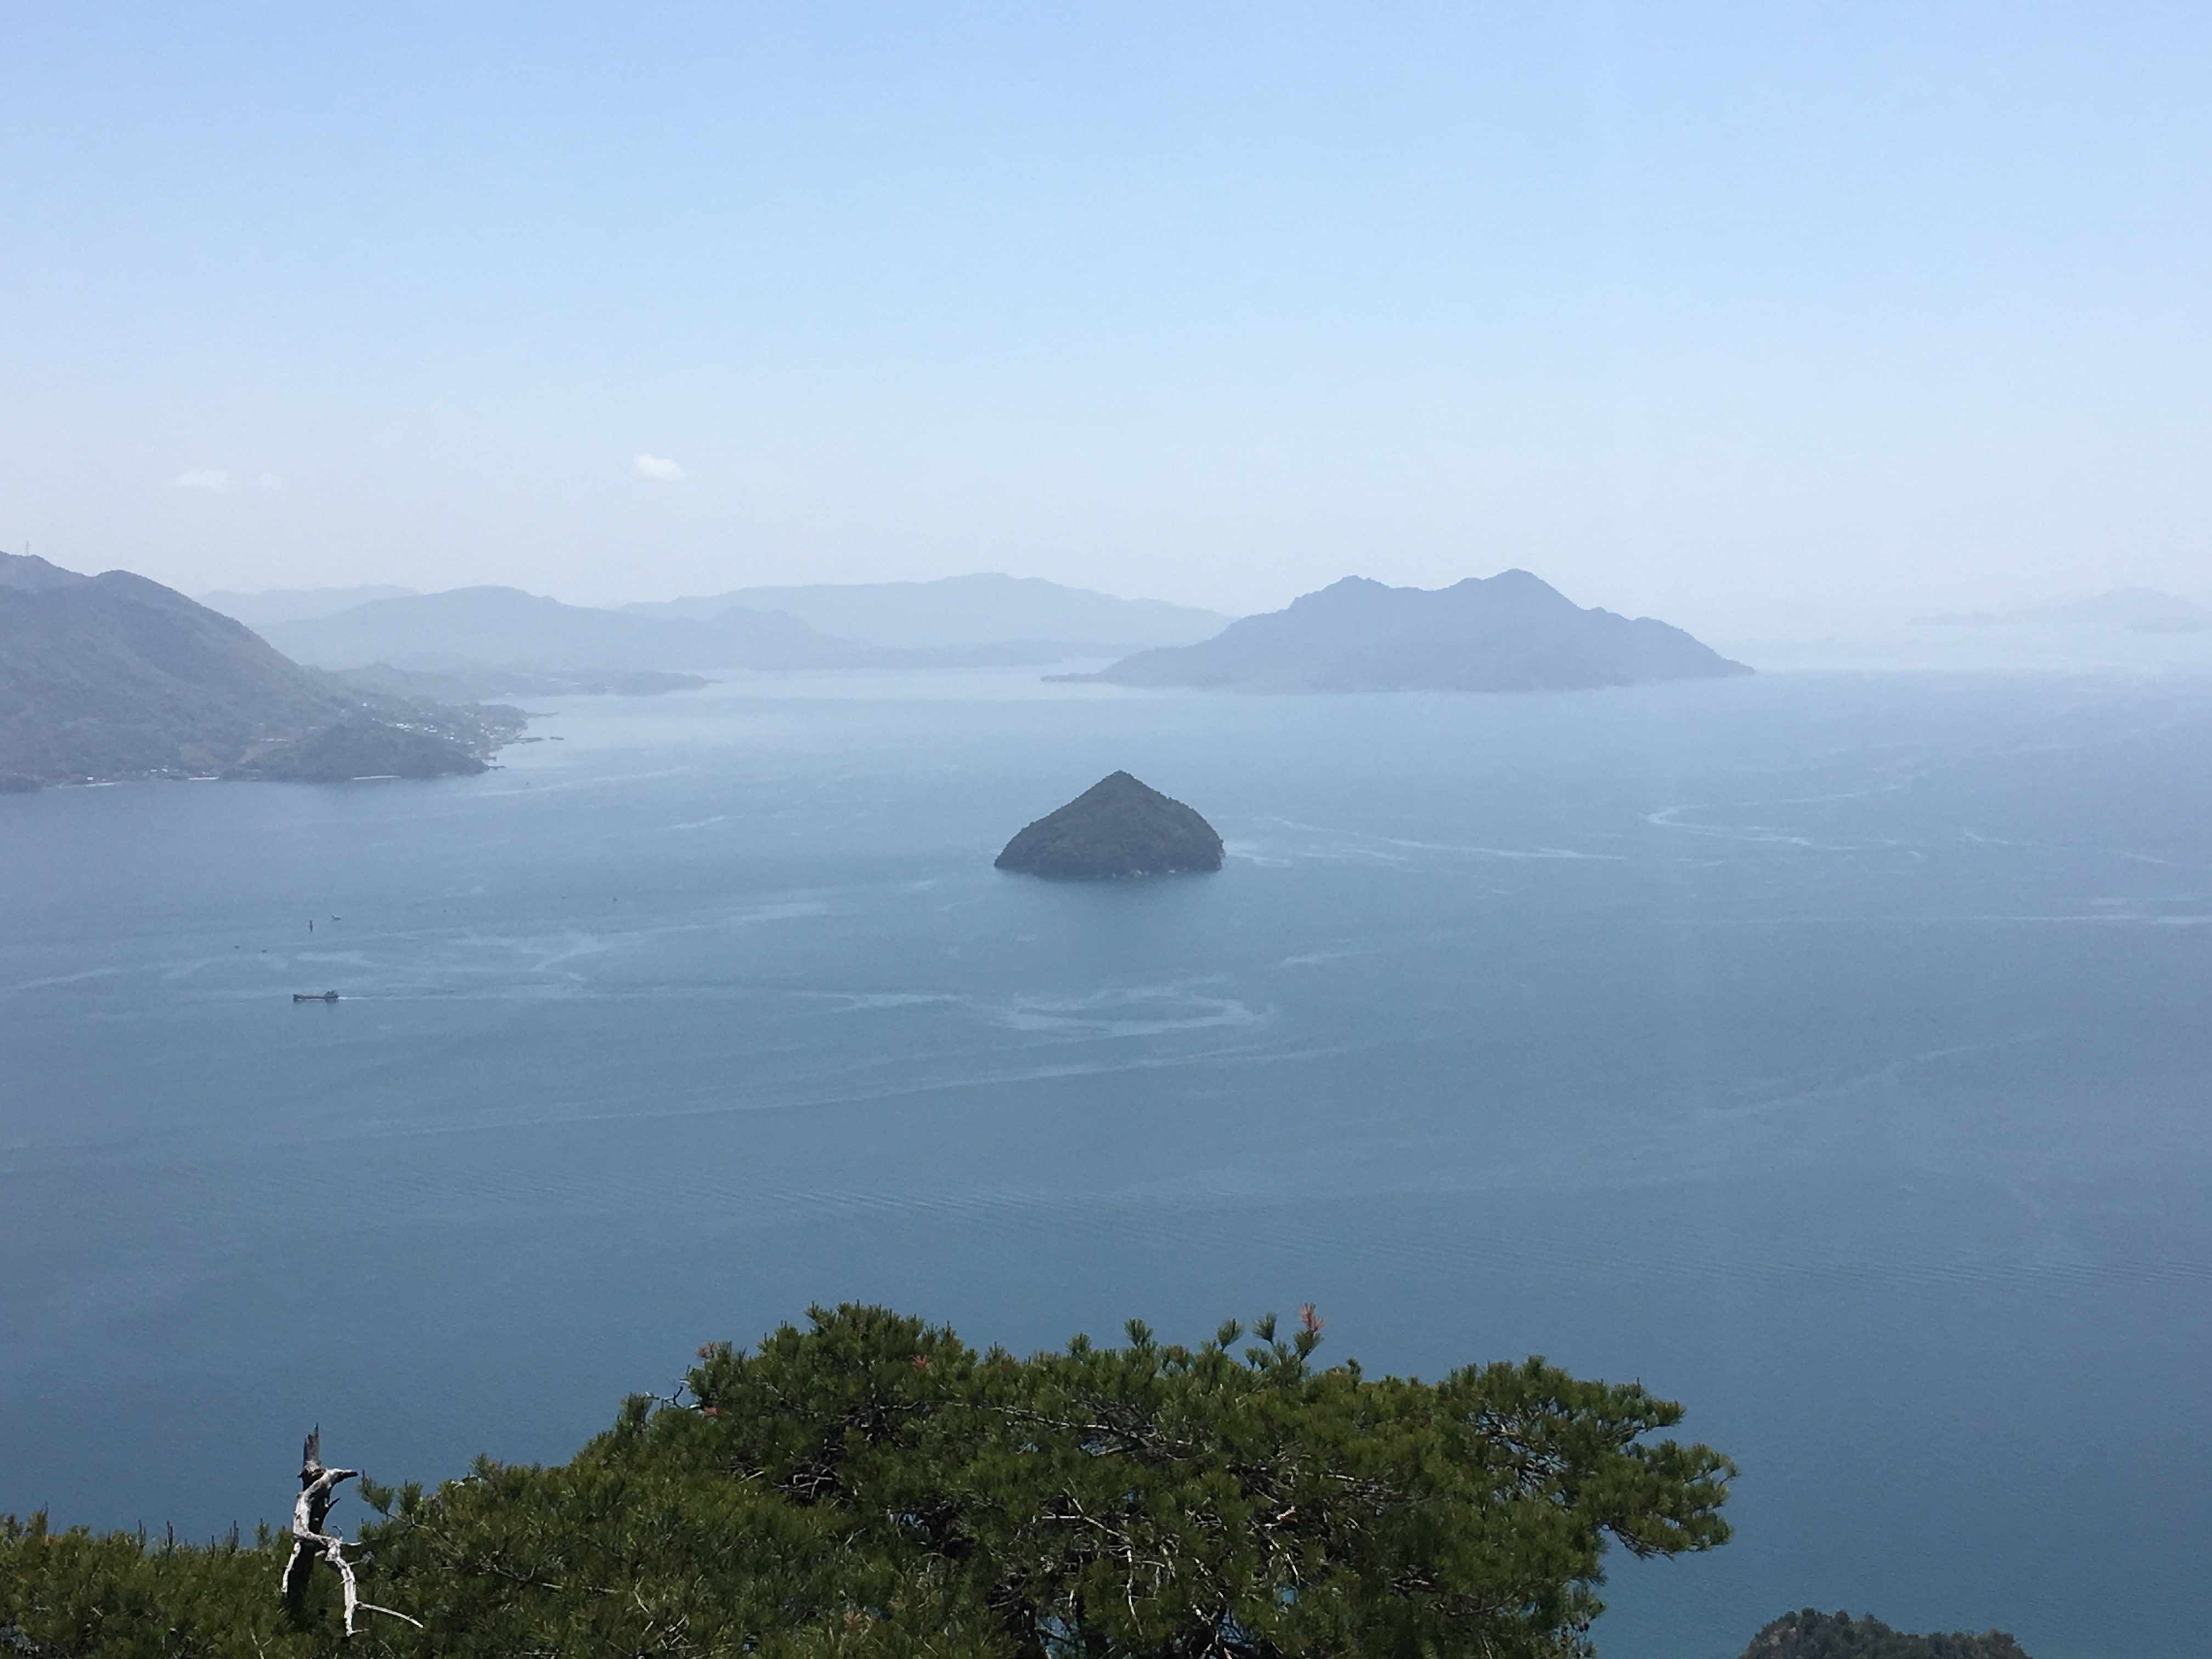 View from the top of Mount Misen